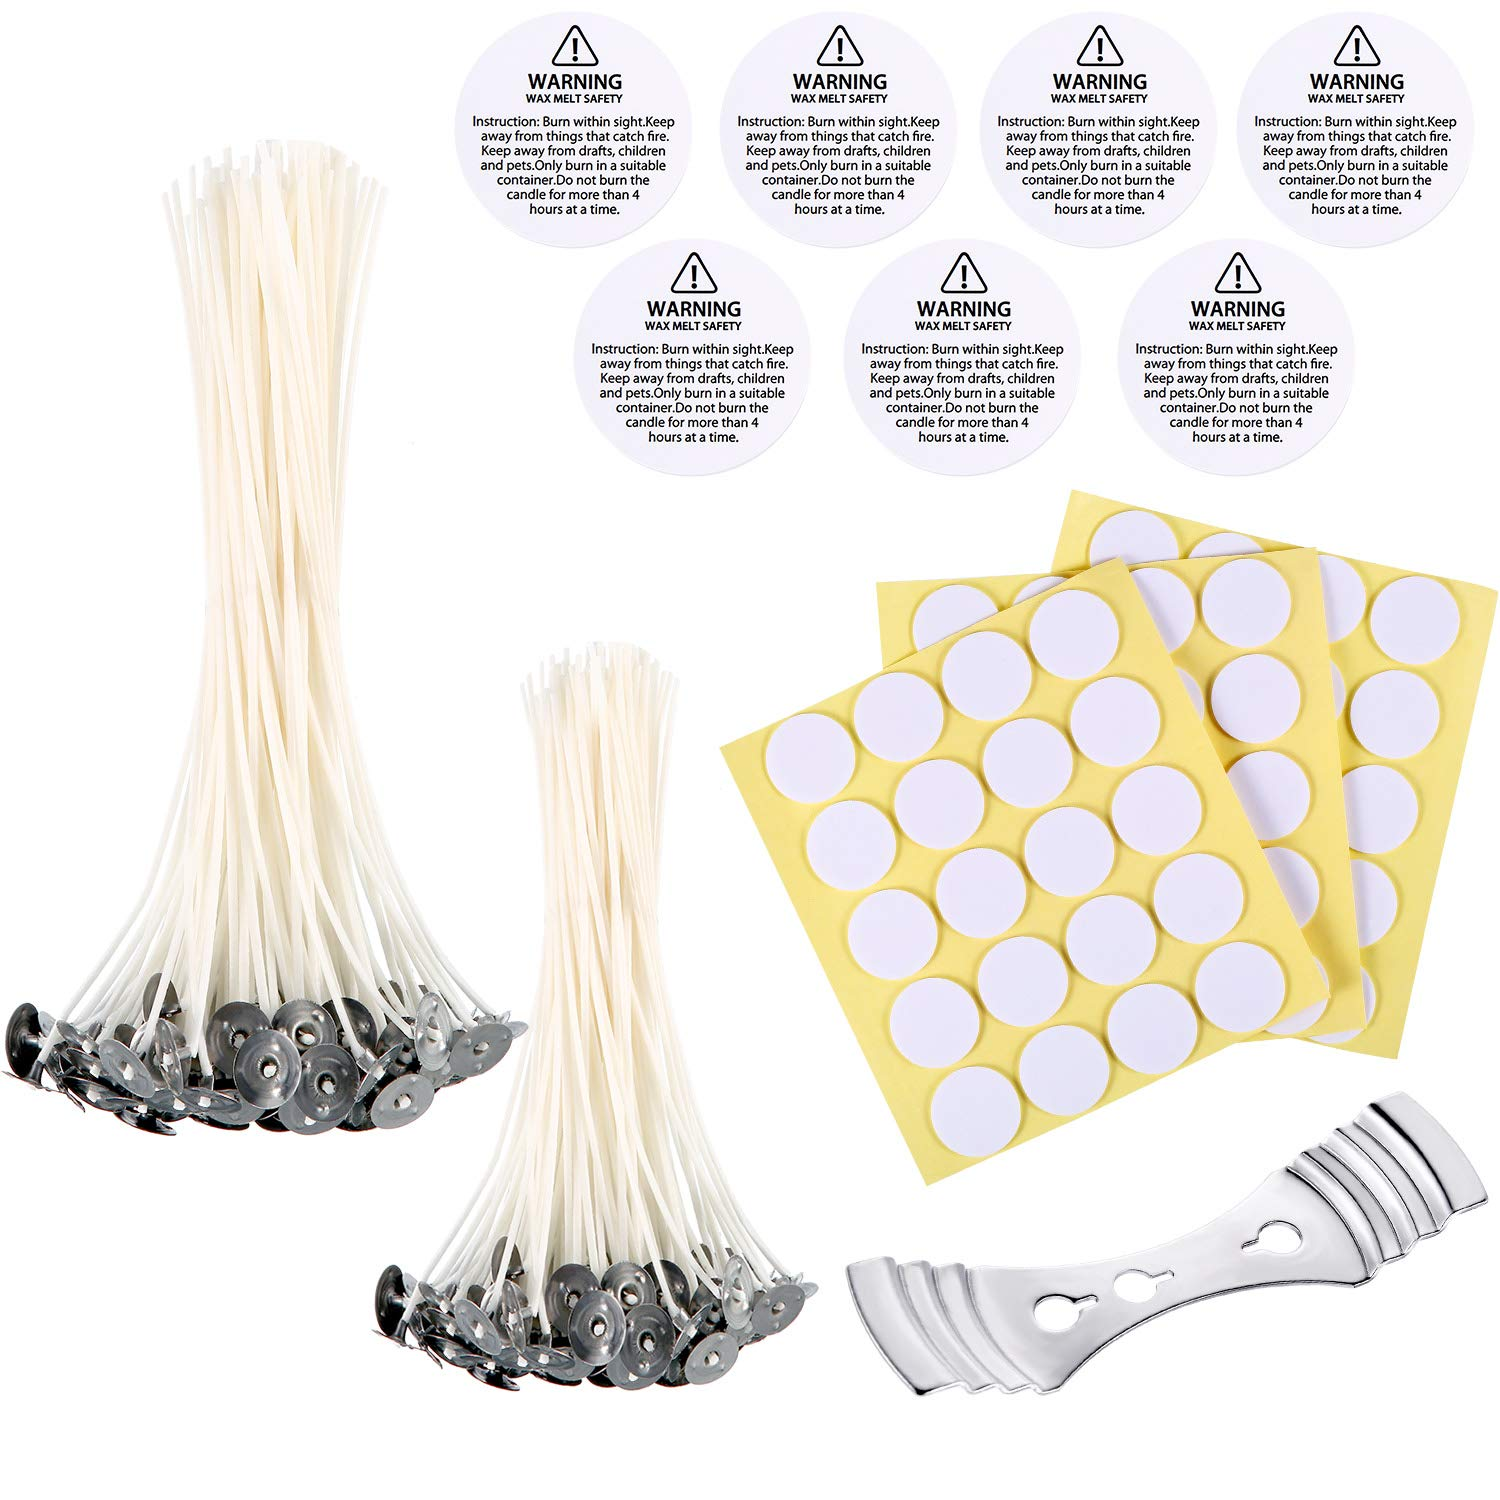 CozYours 8 inch Beeswax Hemp Candle Wicks with Candle Wick Stickers /& Candle Wick Centering Device,50//50//1 pcs;Low Smoke/&Natural;Candle Wicks for Candle Making.Candle DIY Hacks E-Book Included!